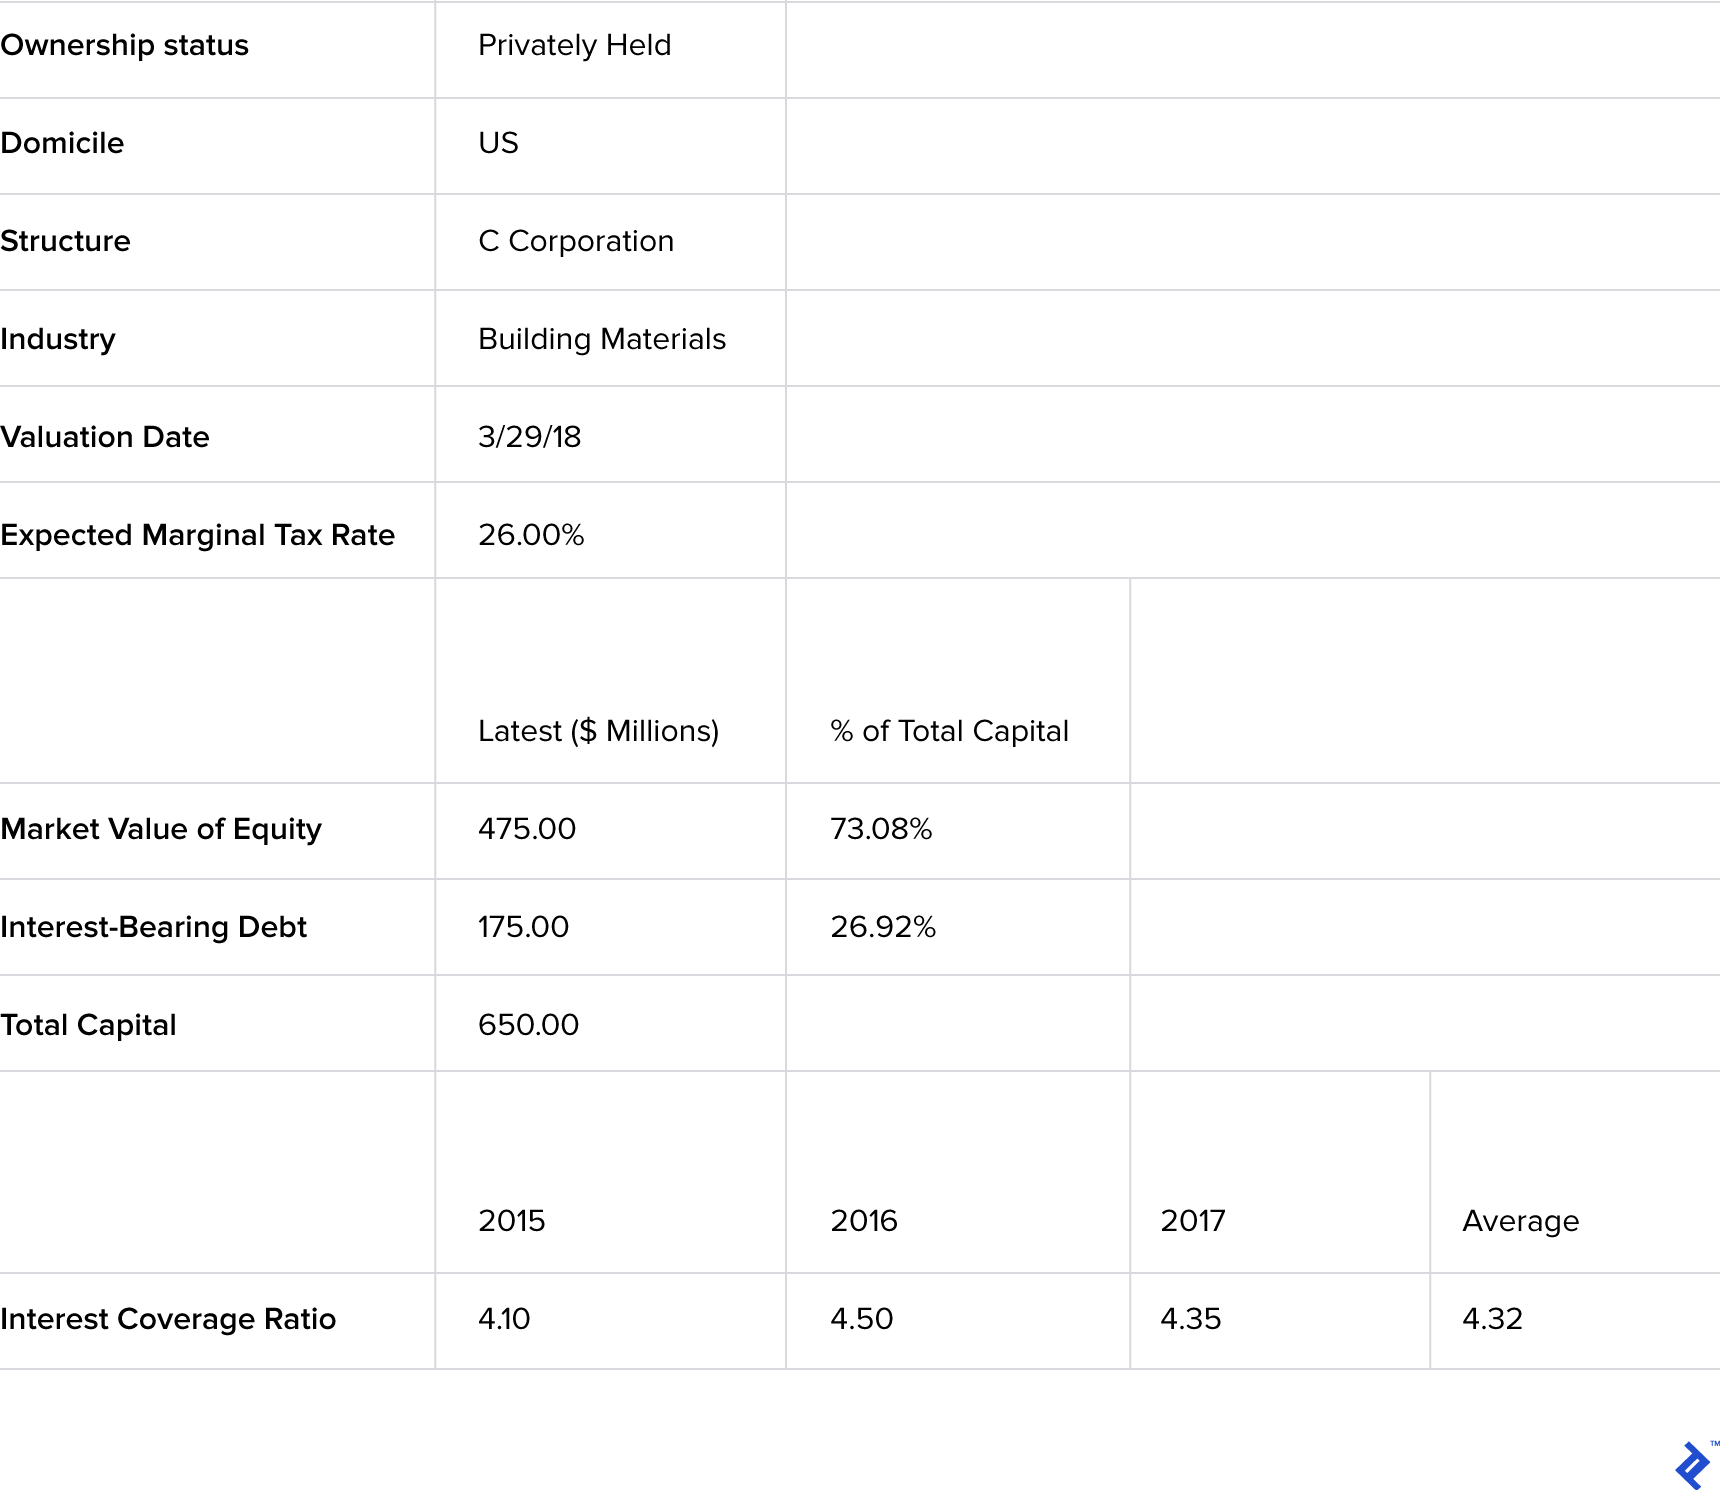 A table containing sample background information